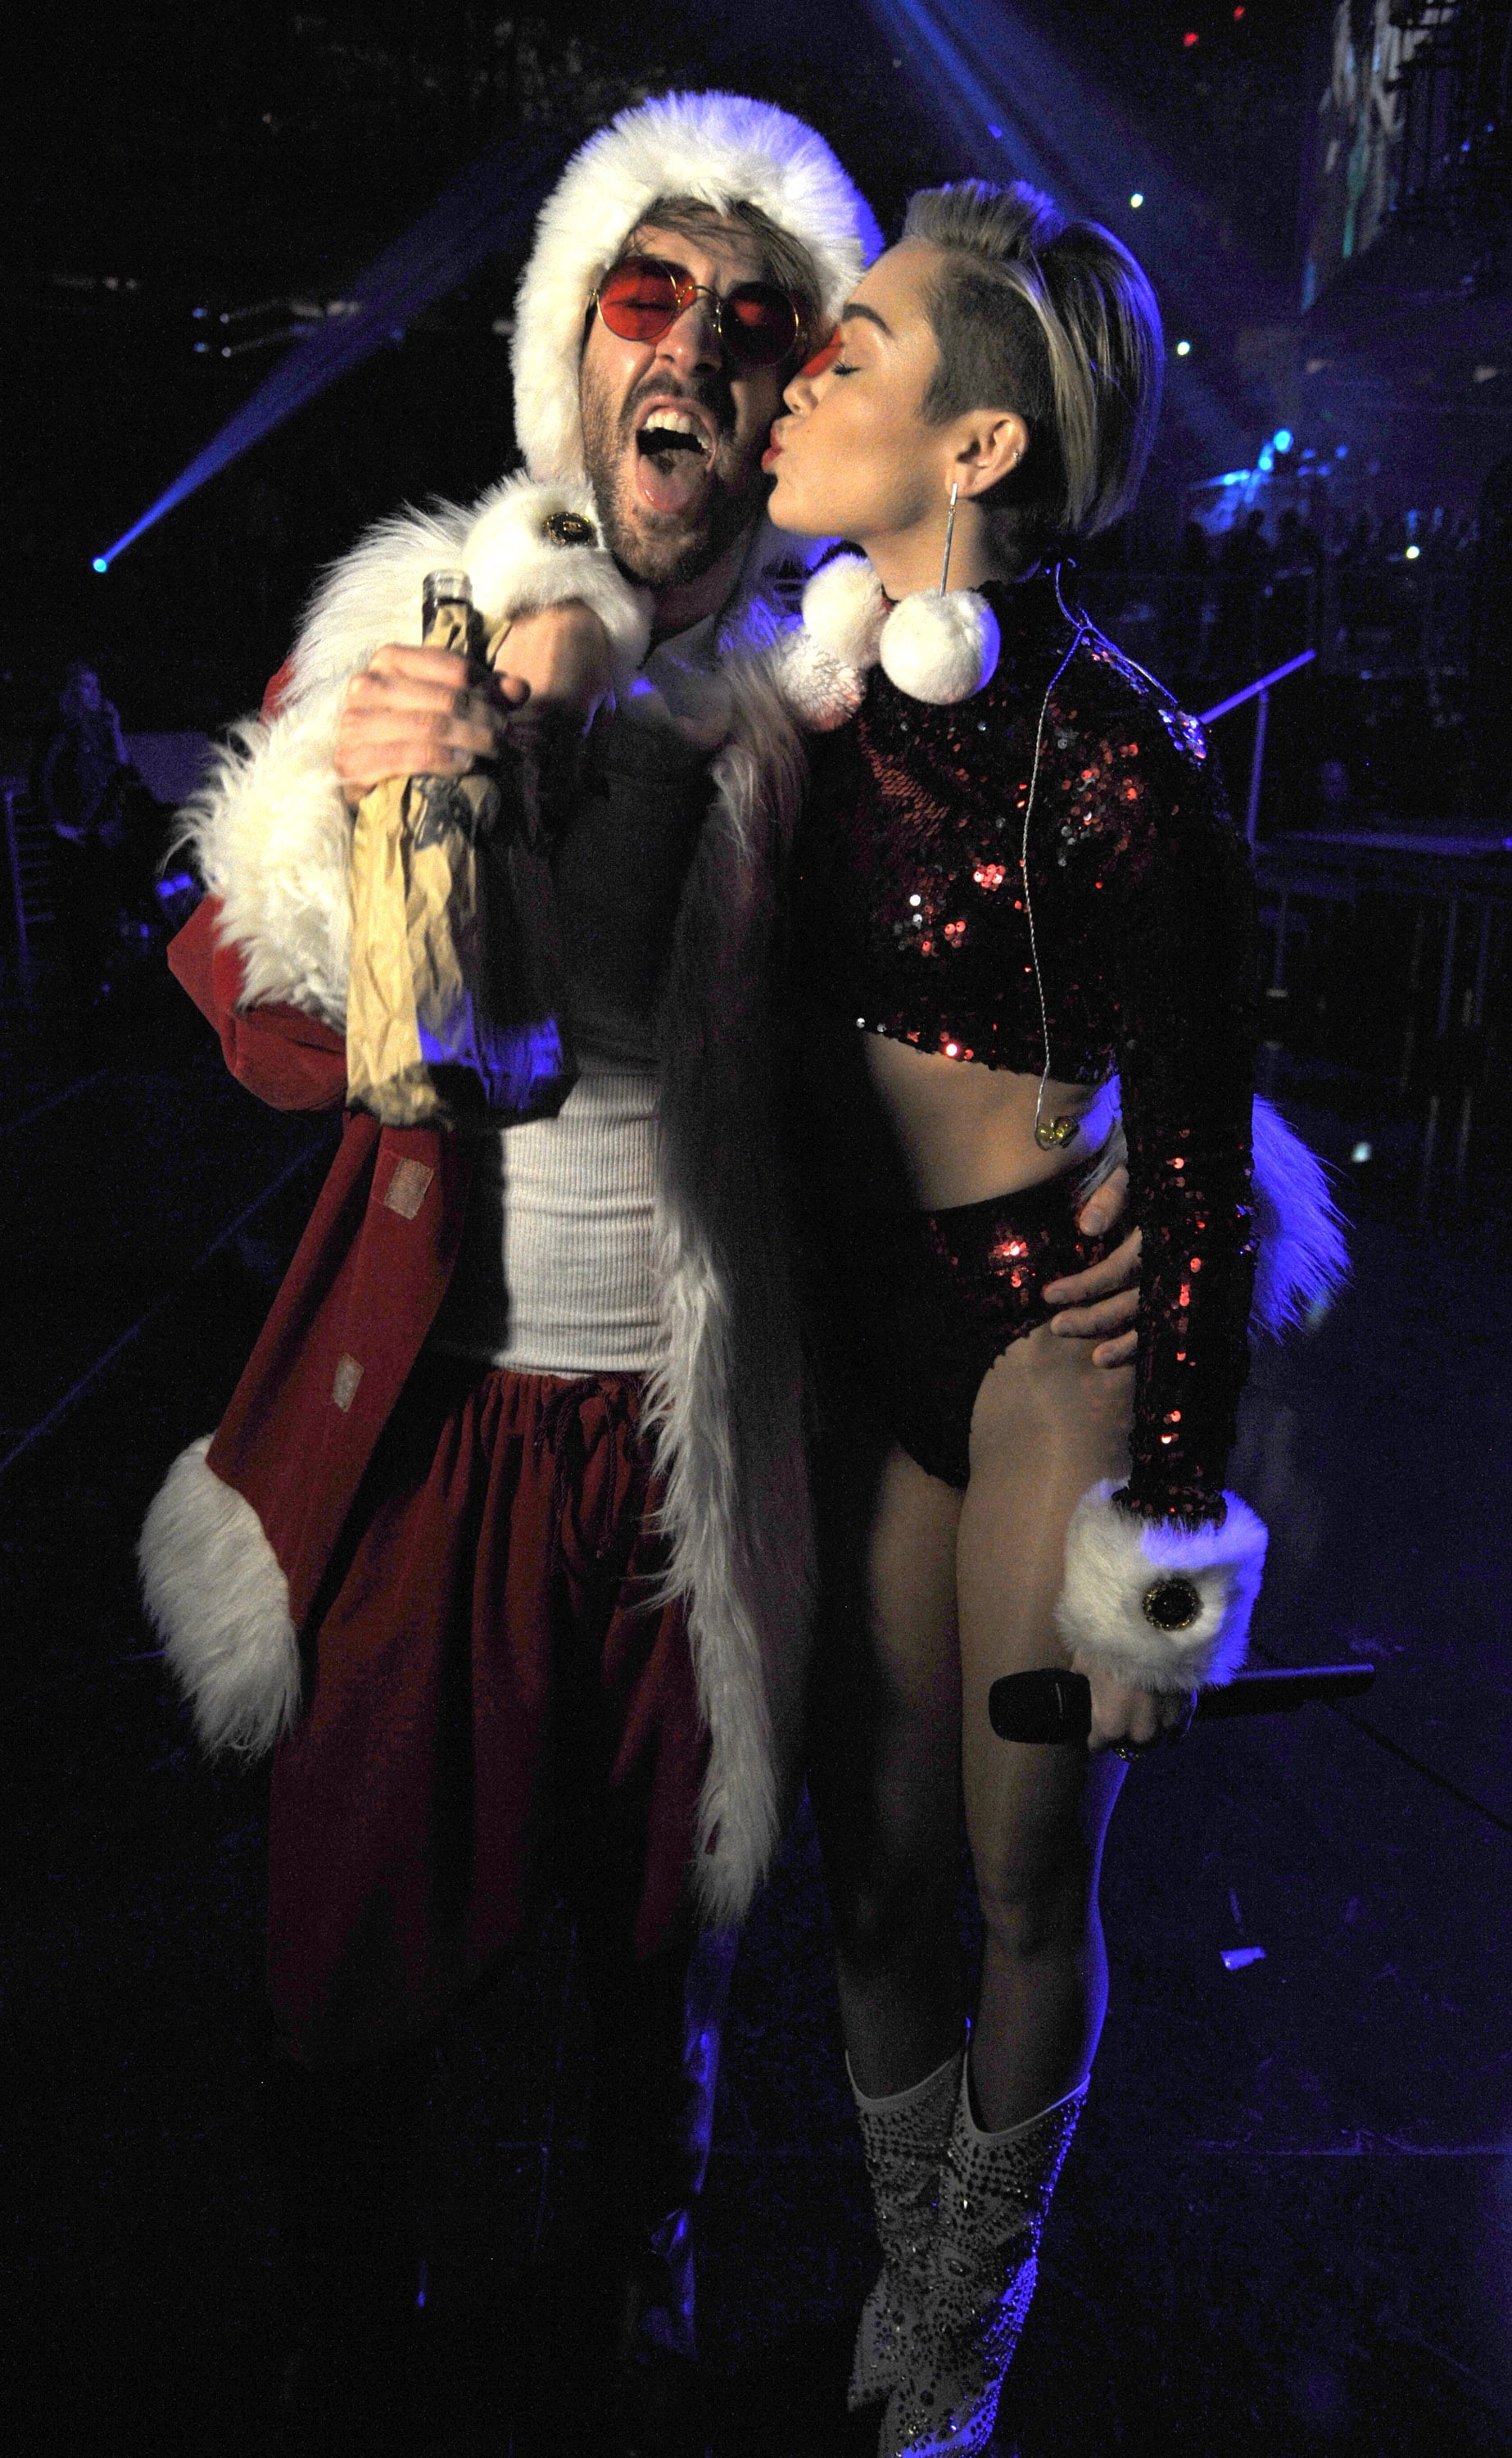 Miley Cyrus planted a smooch on her Santa Claus ...